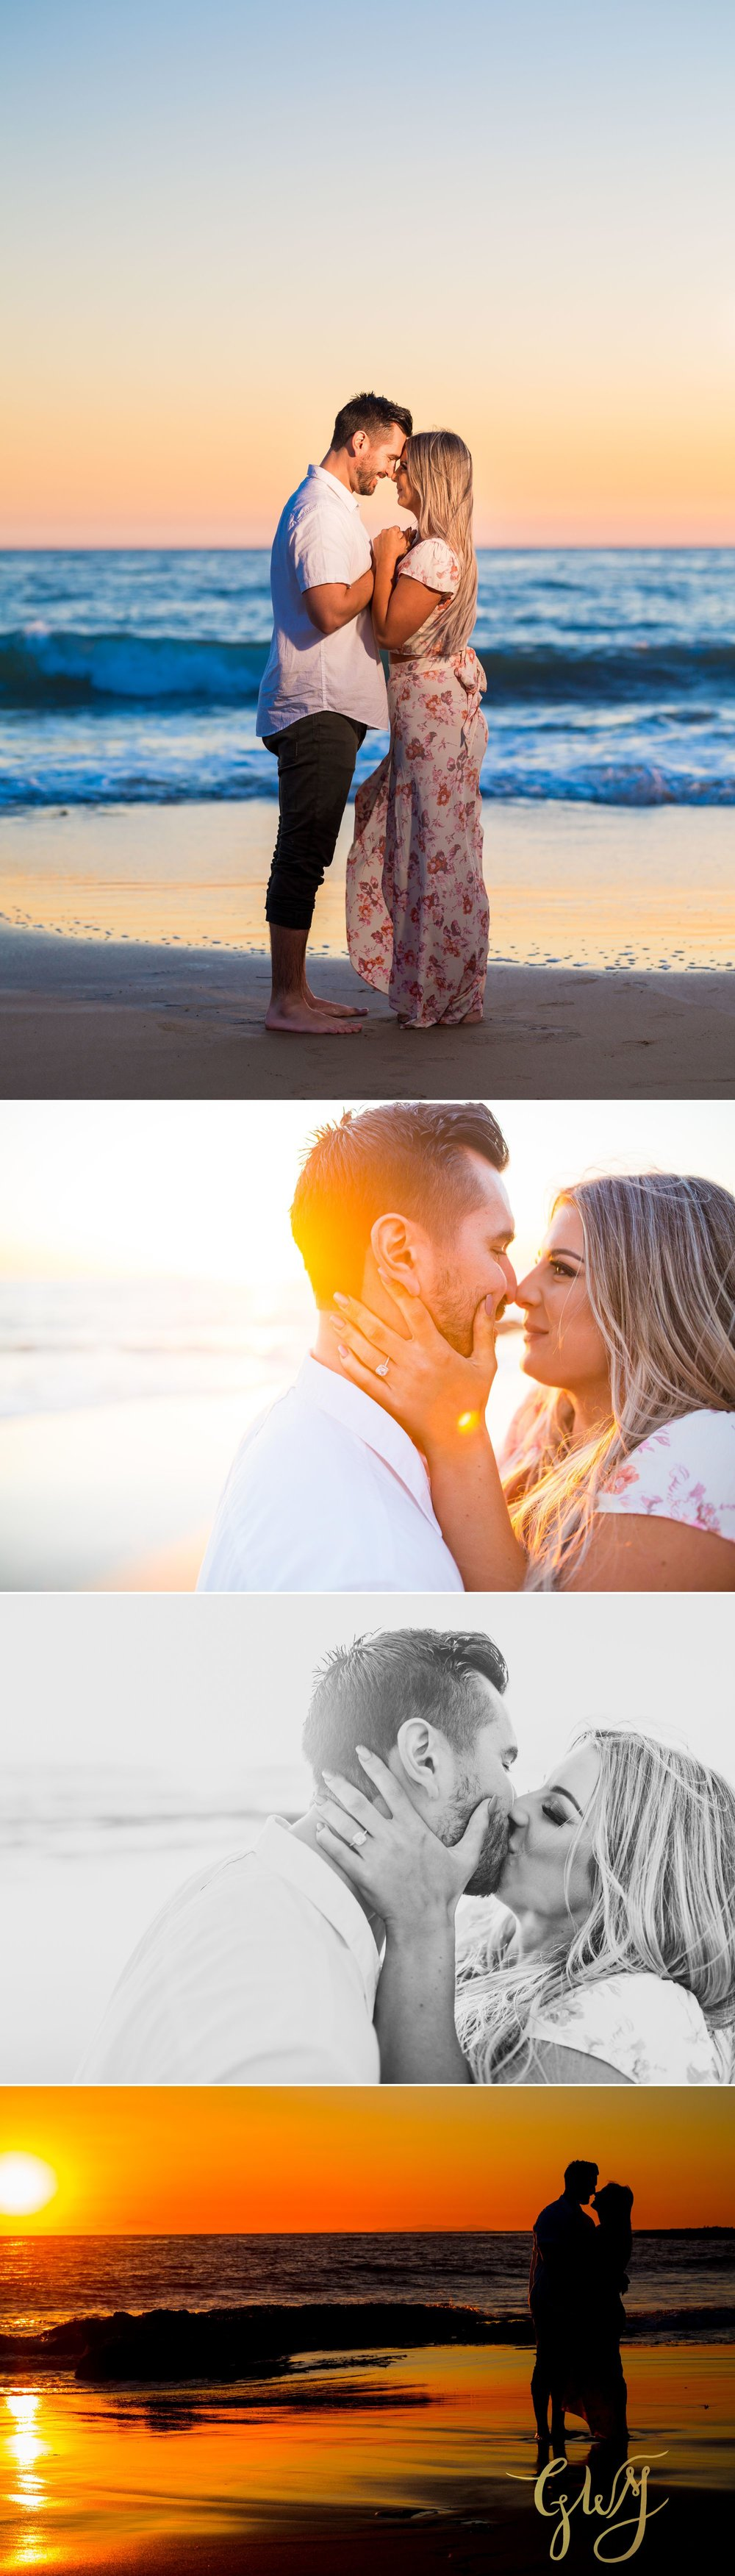 Christien + Crystal Back Bay Newport Crystal Cove Reef Point Sunset Engagement Portrait Session by Glass Woods Media 21.jpg